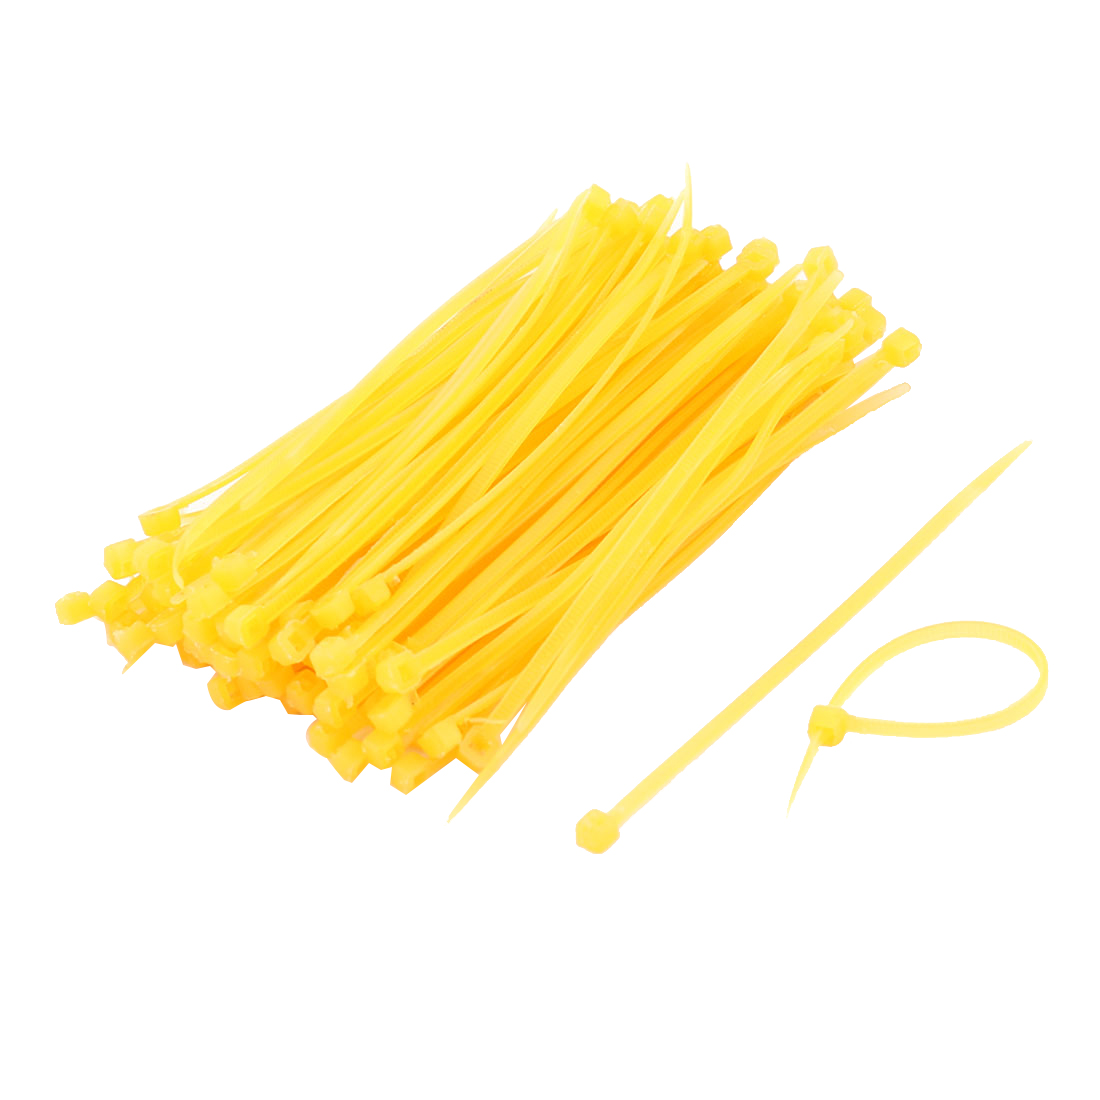 3 x 98mm Plastic Self-Locking Cable Zip Ties Straps Fasten Wrap Yellow 100 Pcs